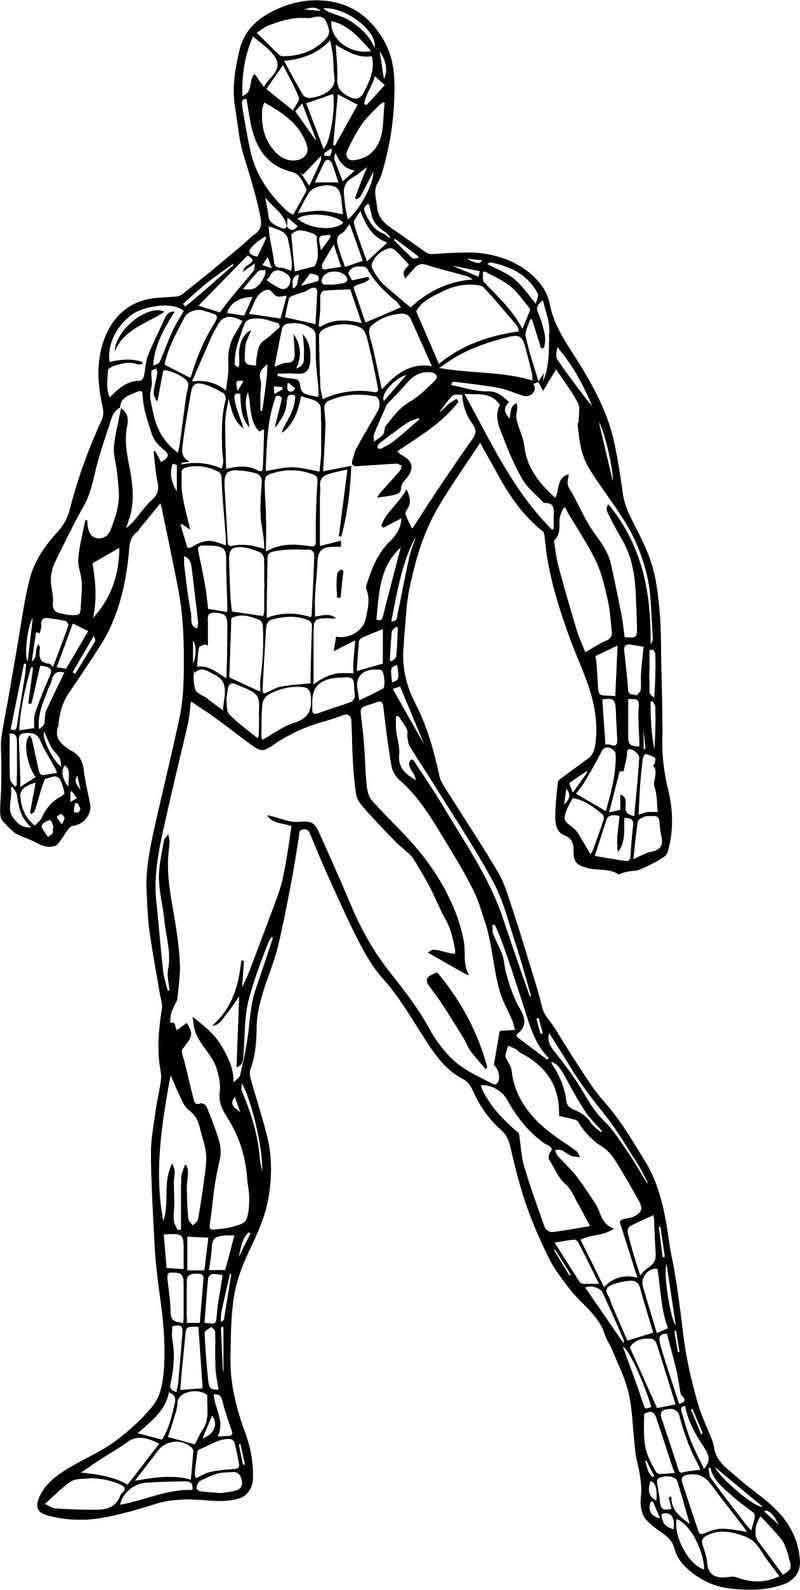 Spiderman Coloring Pages Disney Coloring Pages Superhero Coloring Pages Spiderman Coloring